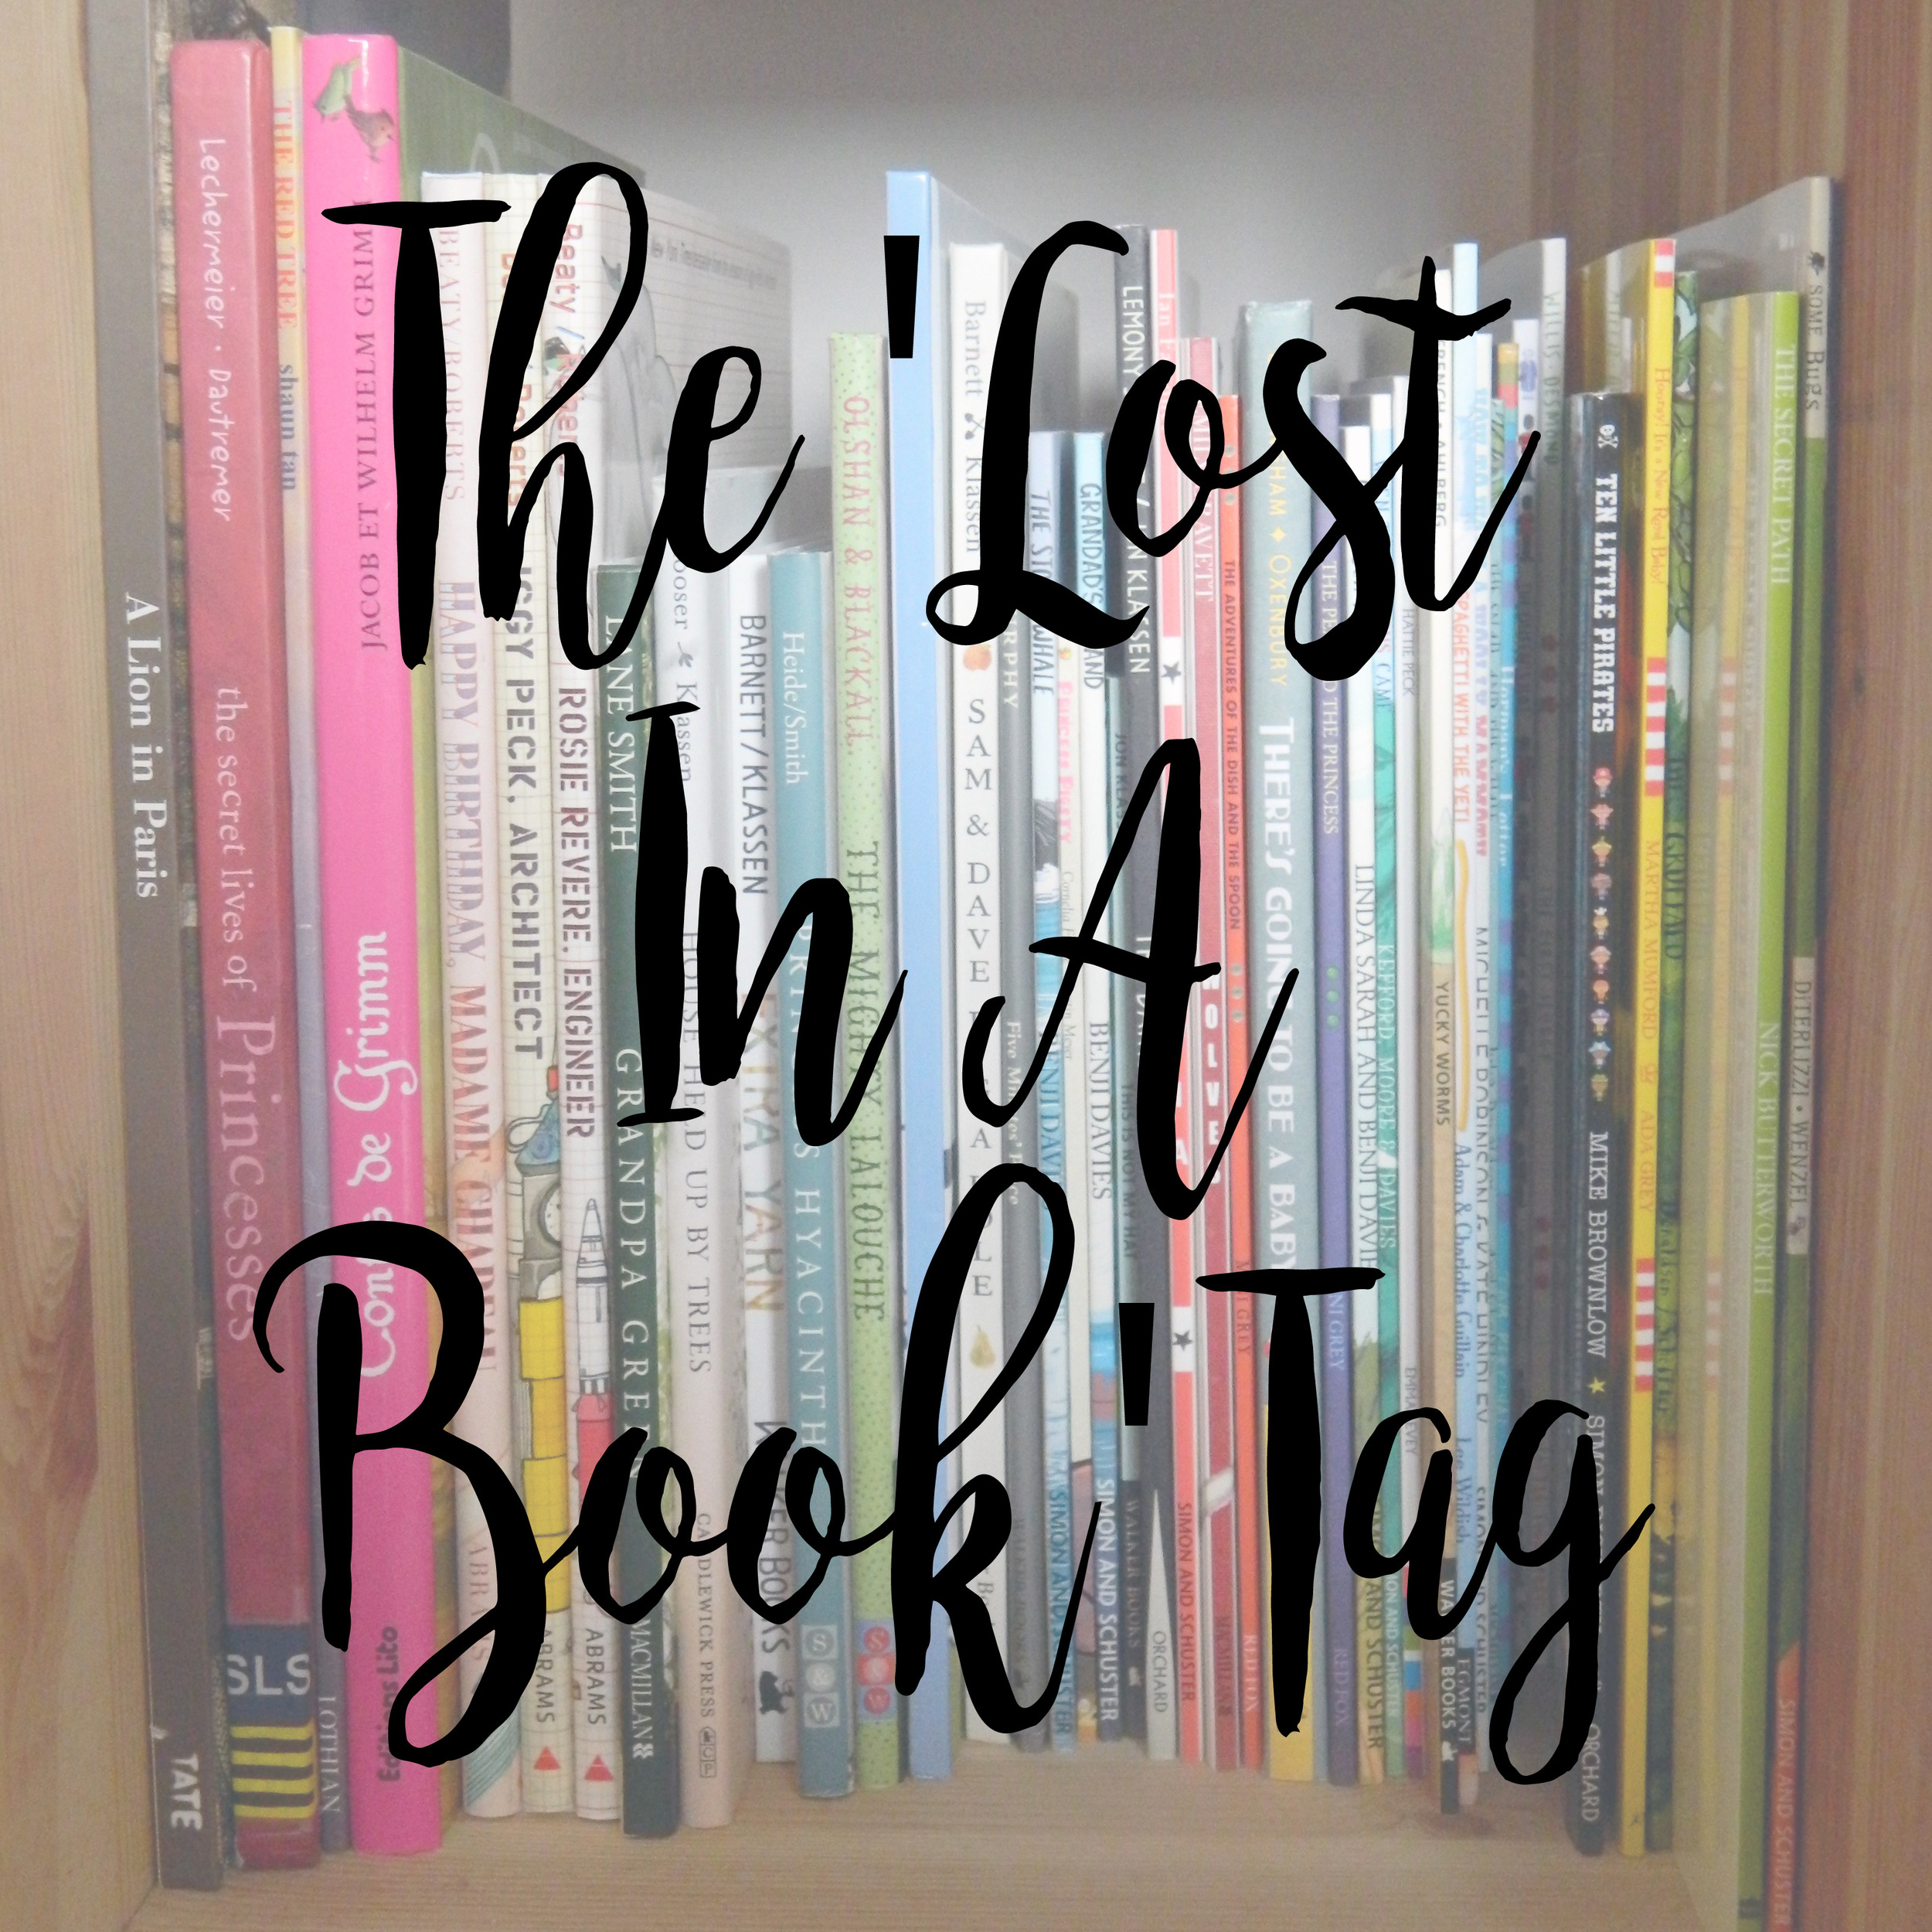 The 'Lost In A Book Tag' - nominated by Hailey Jade Ryan.